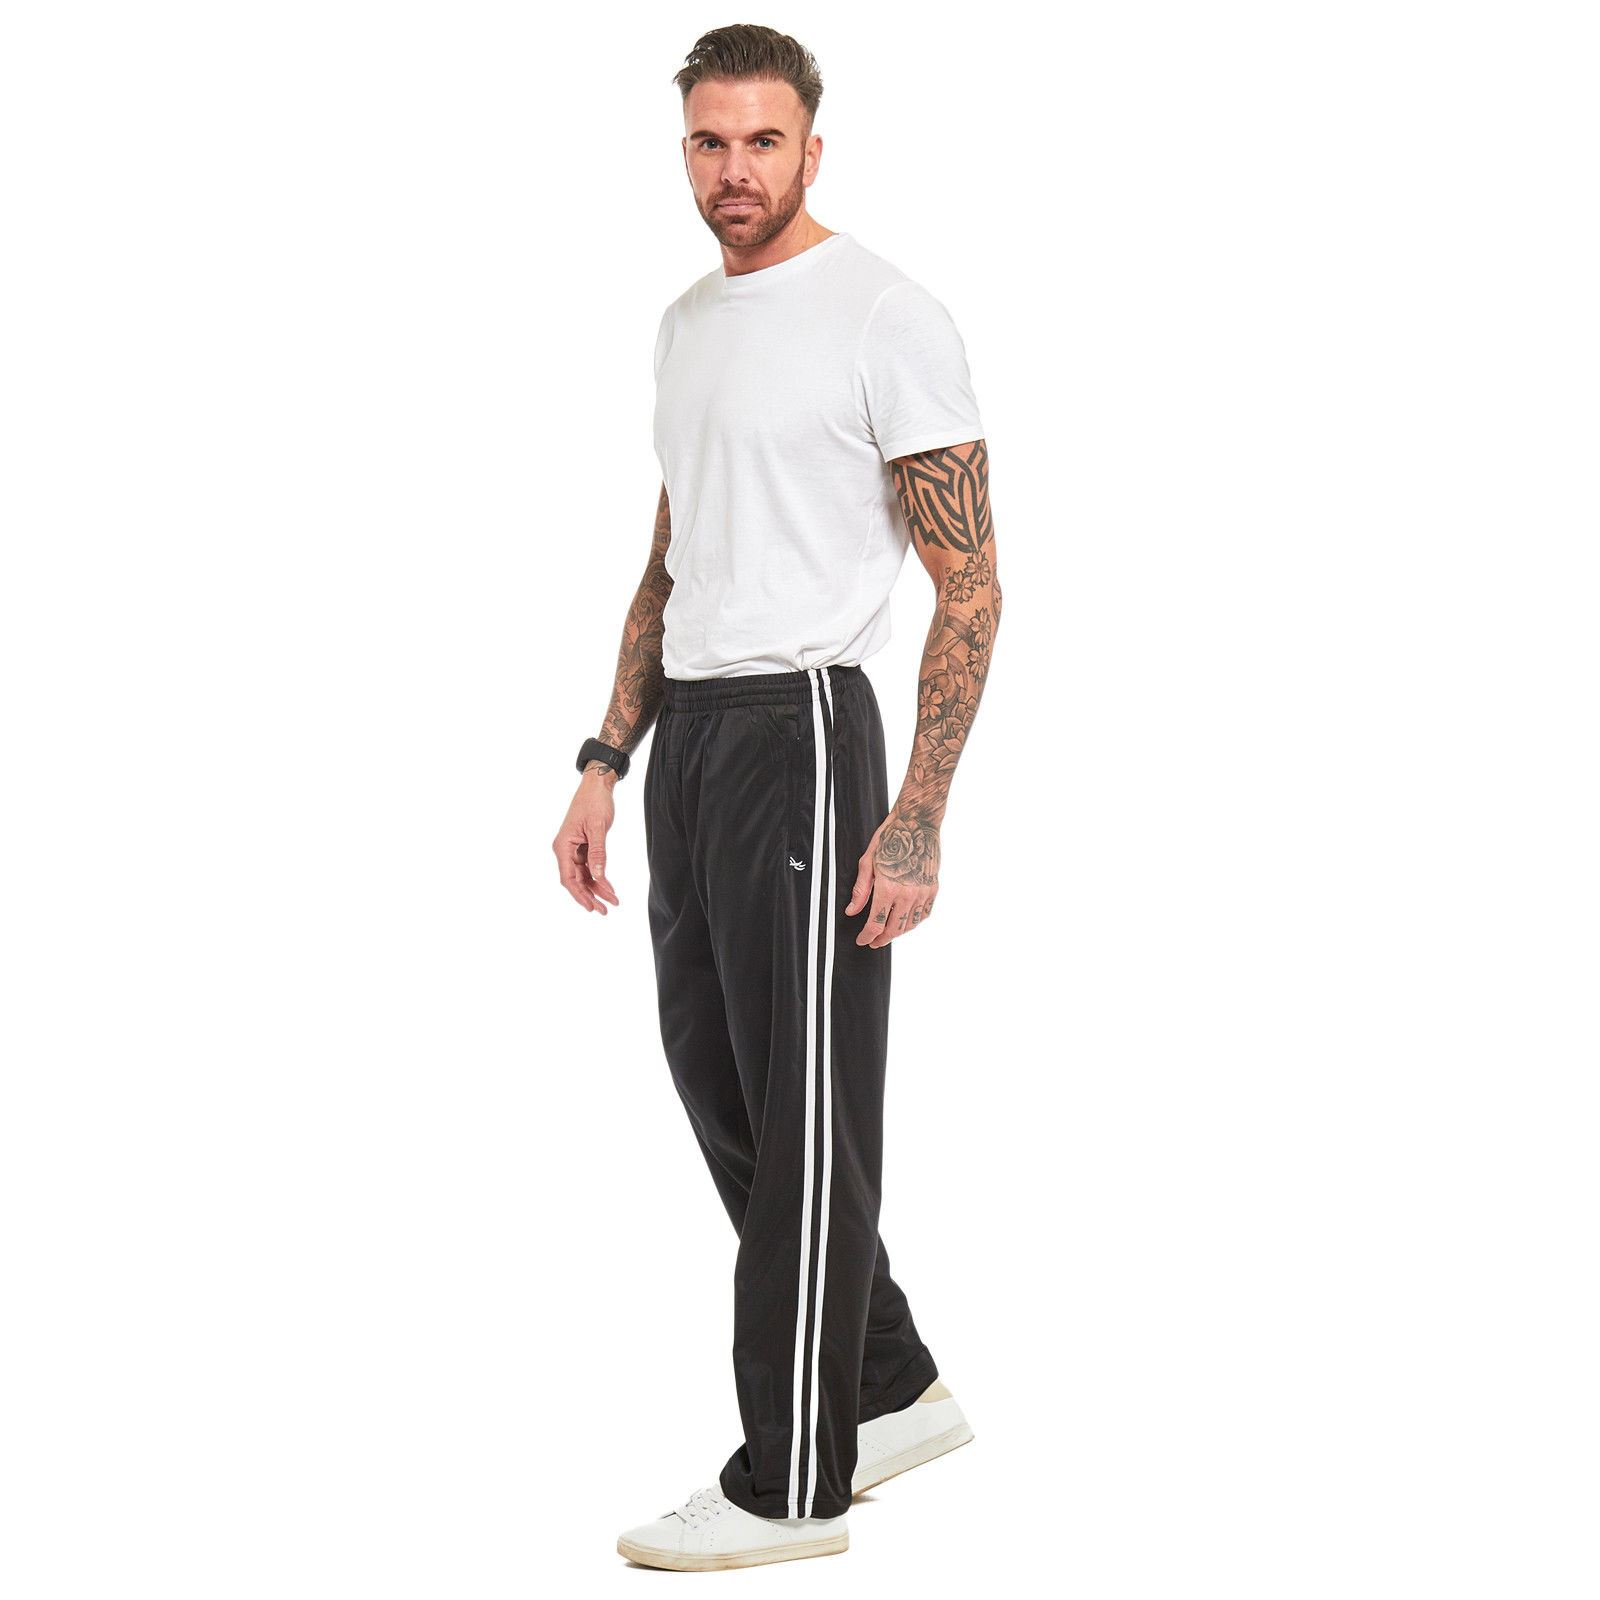 Mens-Tracksuit-Joggers-Jogging-Striped-Gym-Sports-Silky-Bottoms-Trousers-Pants thumbnail 7